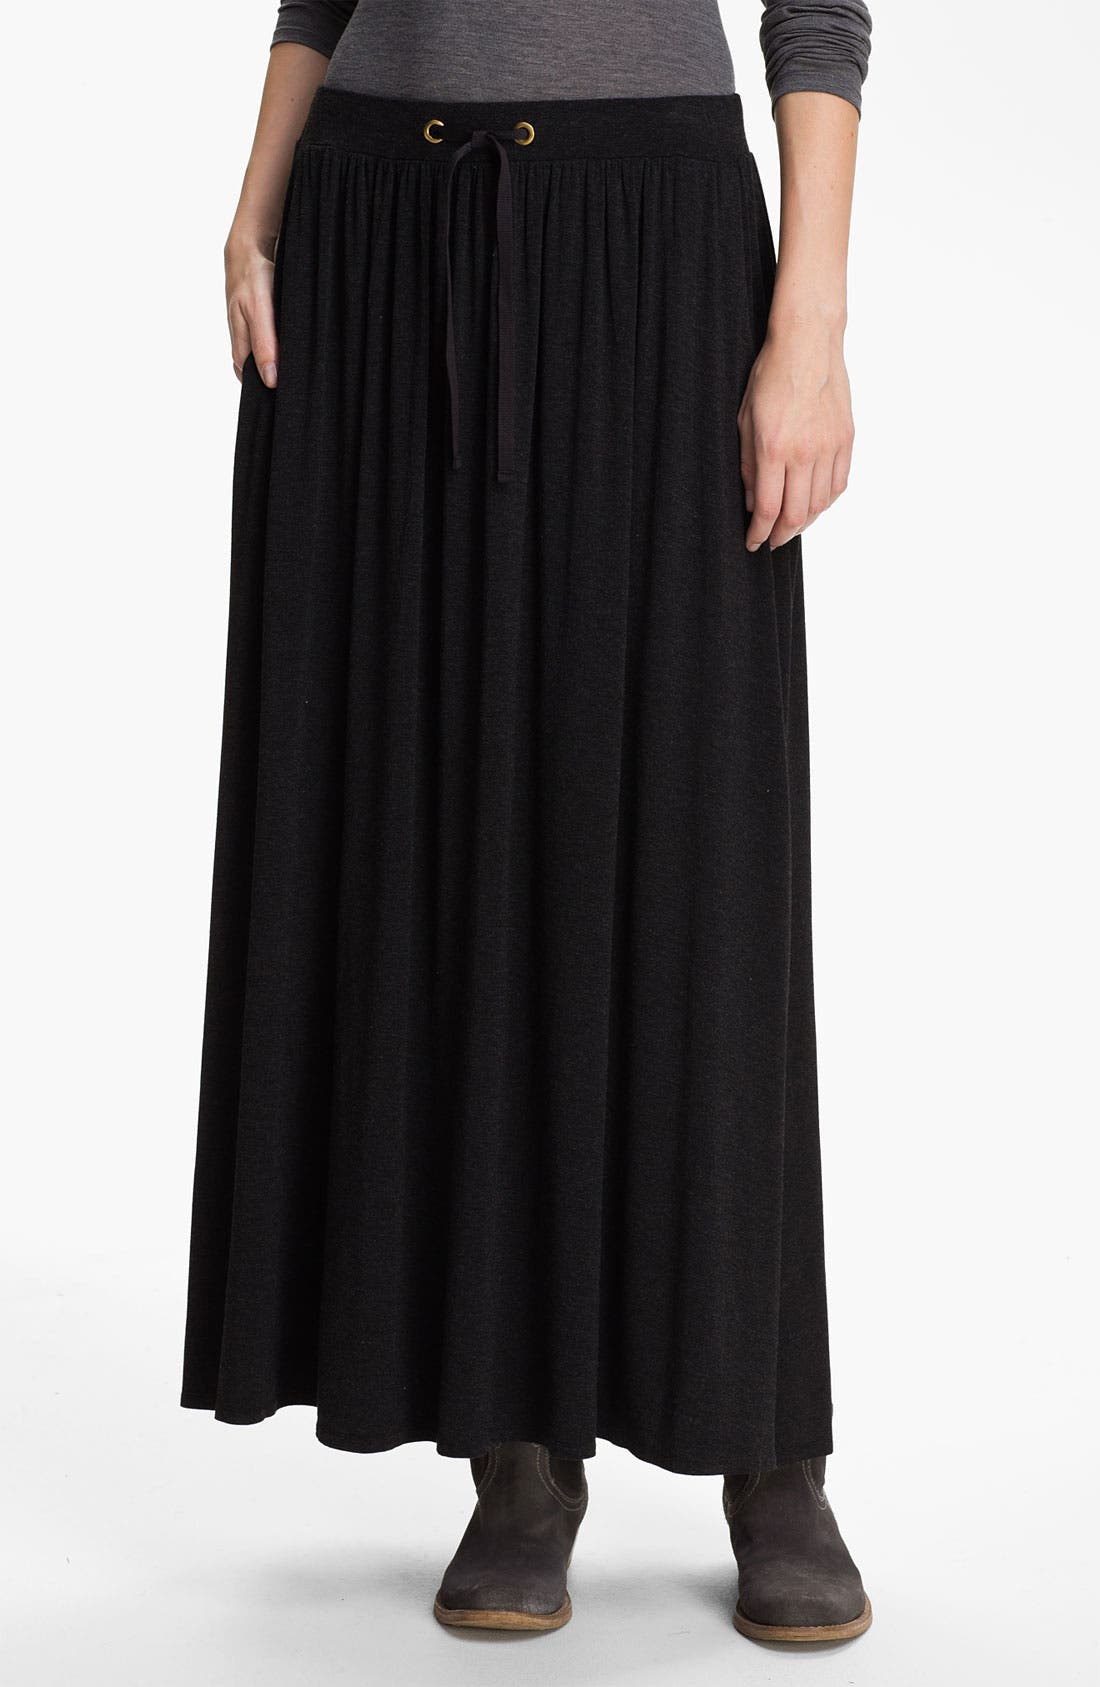 Alternate Image 1 Selected - Eileen Fisher Drawstring Maxi Skirt (Online Exclusive)